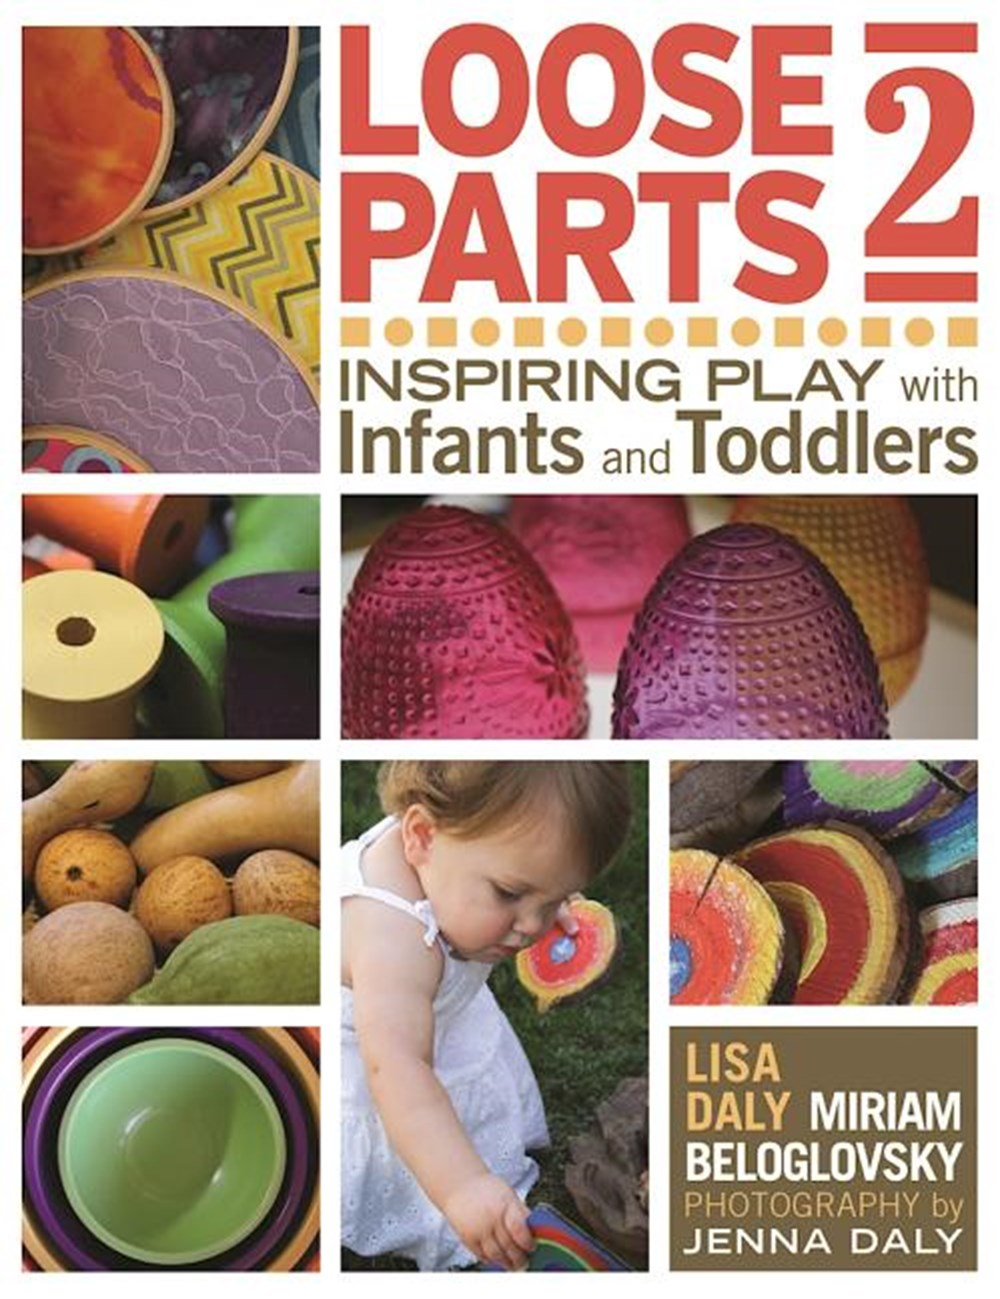 Loose Parts 2 Inspiring Play with Infants and Toddlers